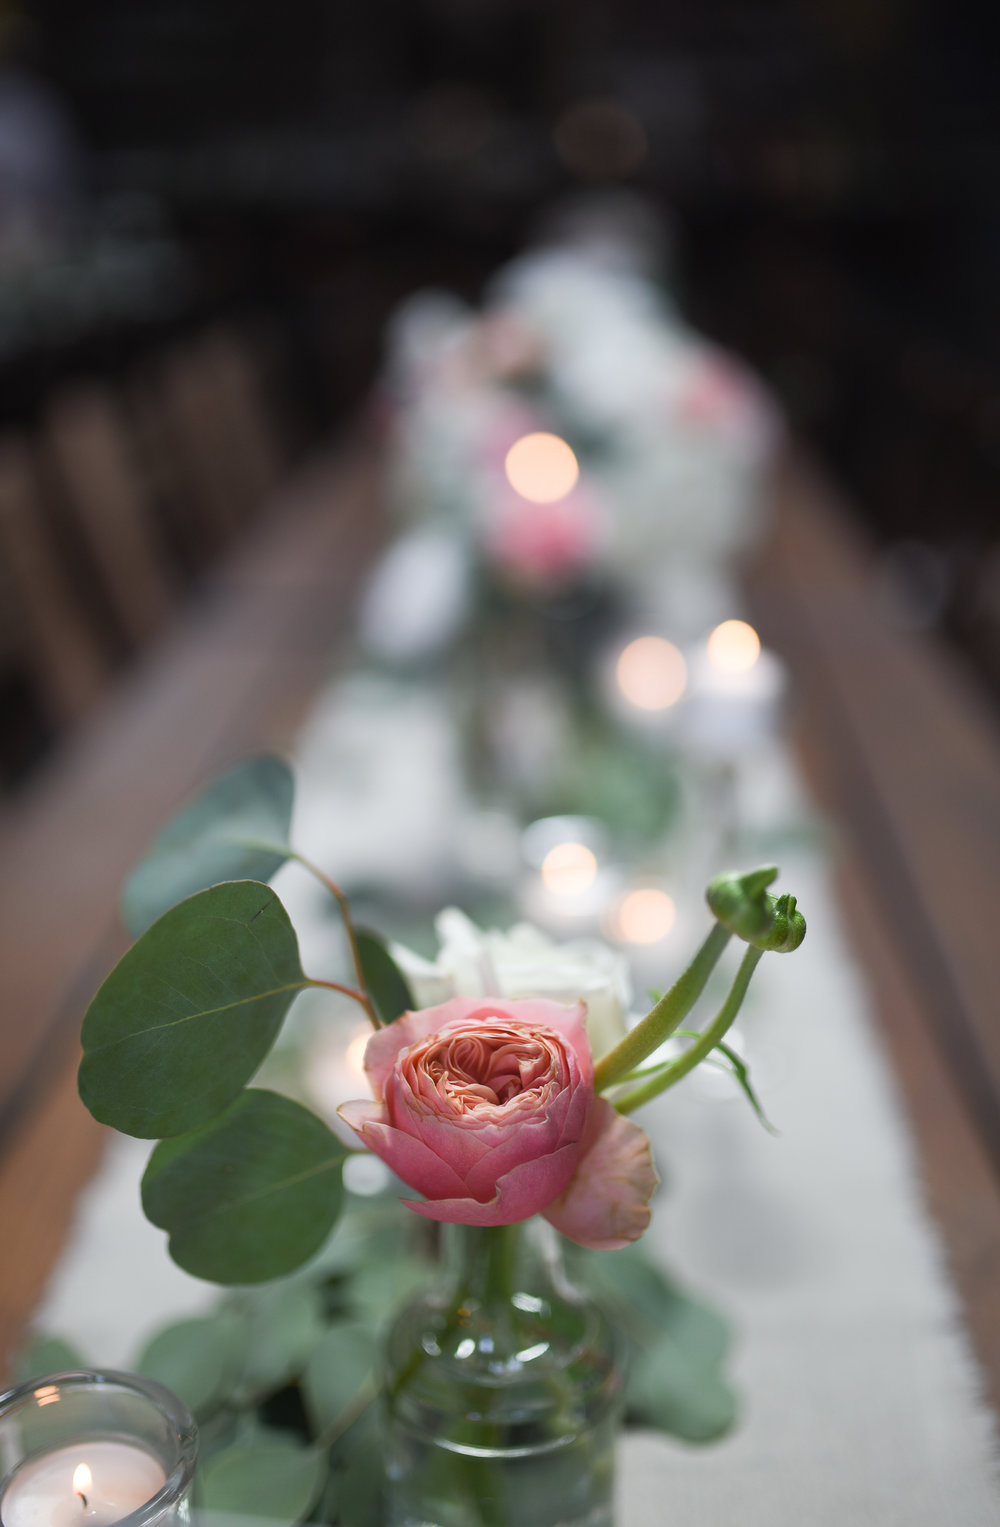 Pink garden roses are a show stopper in bud vases at the Brooklyn wedding